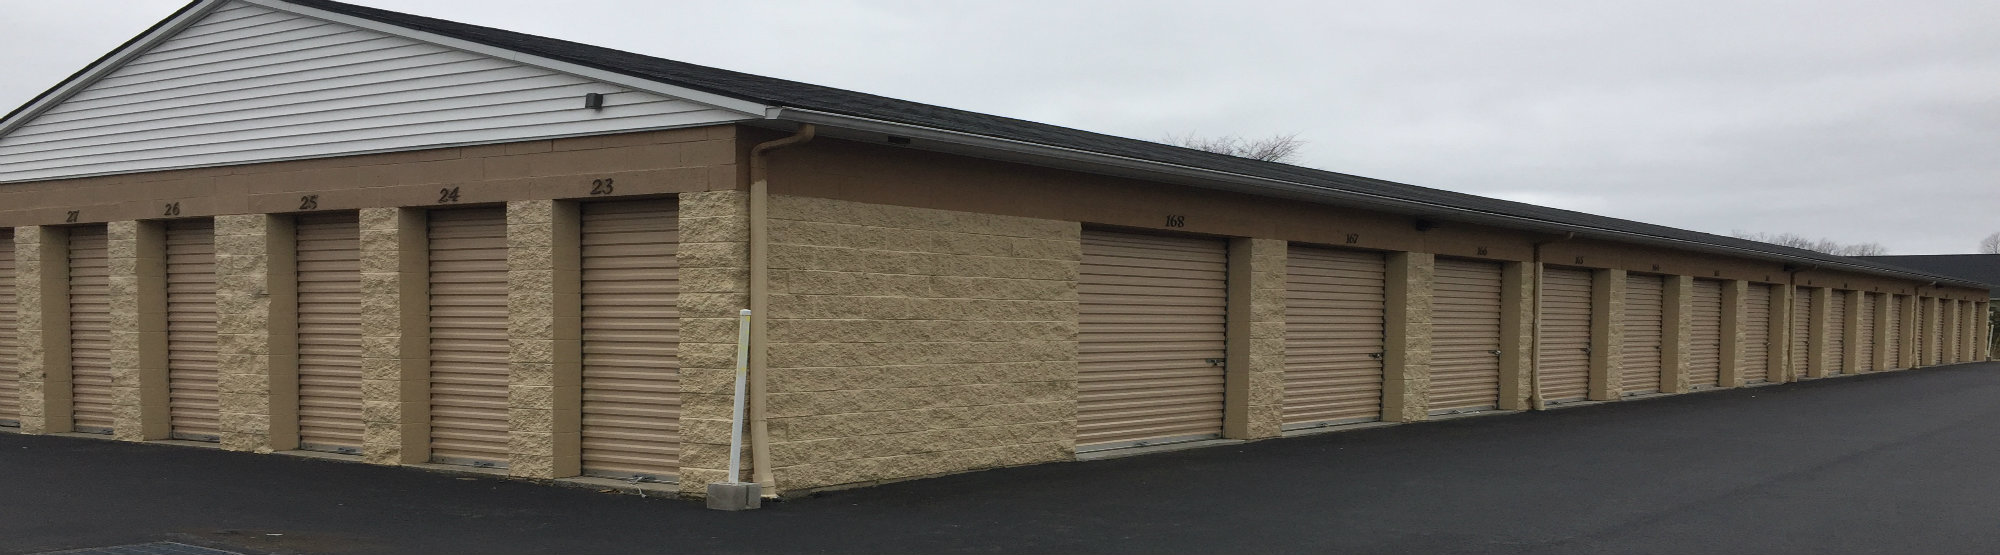 Drive-up Access at Value Storage Space